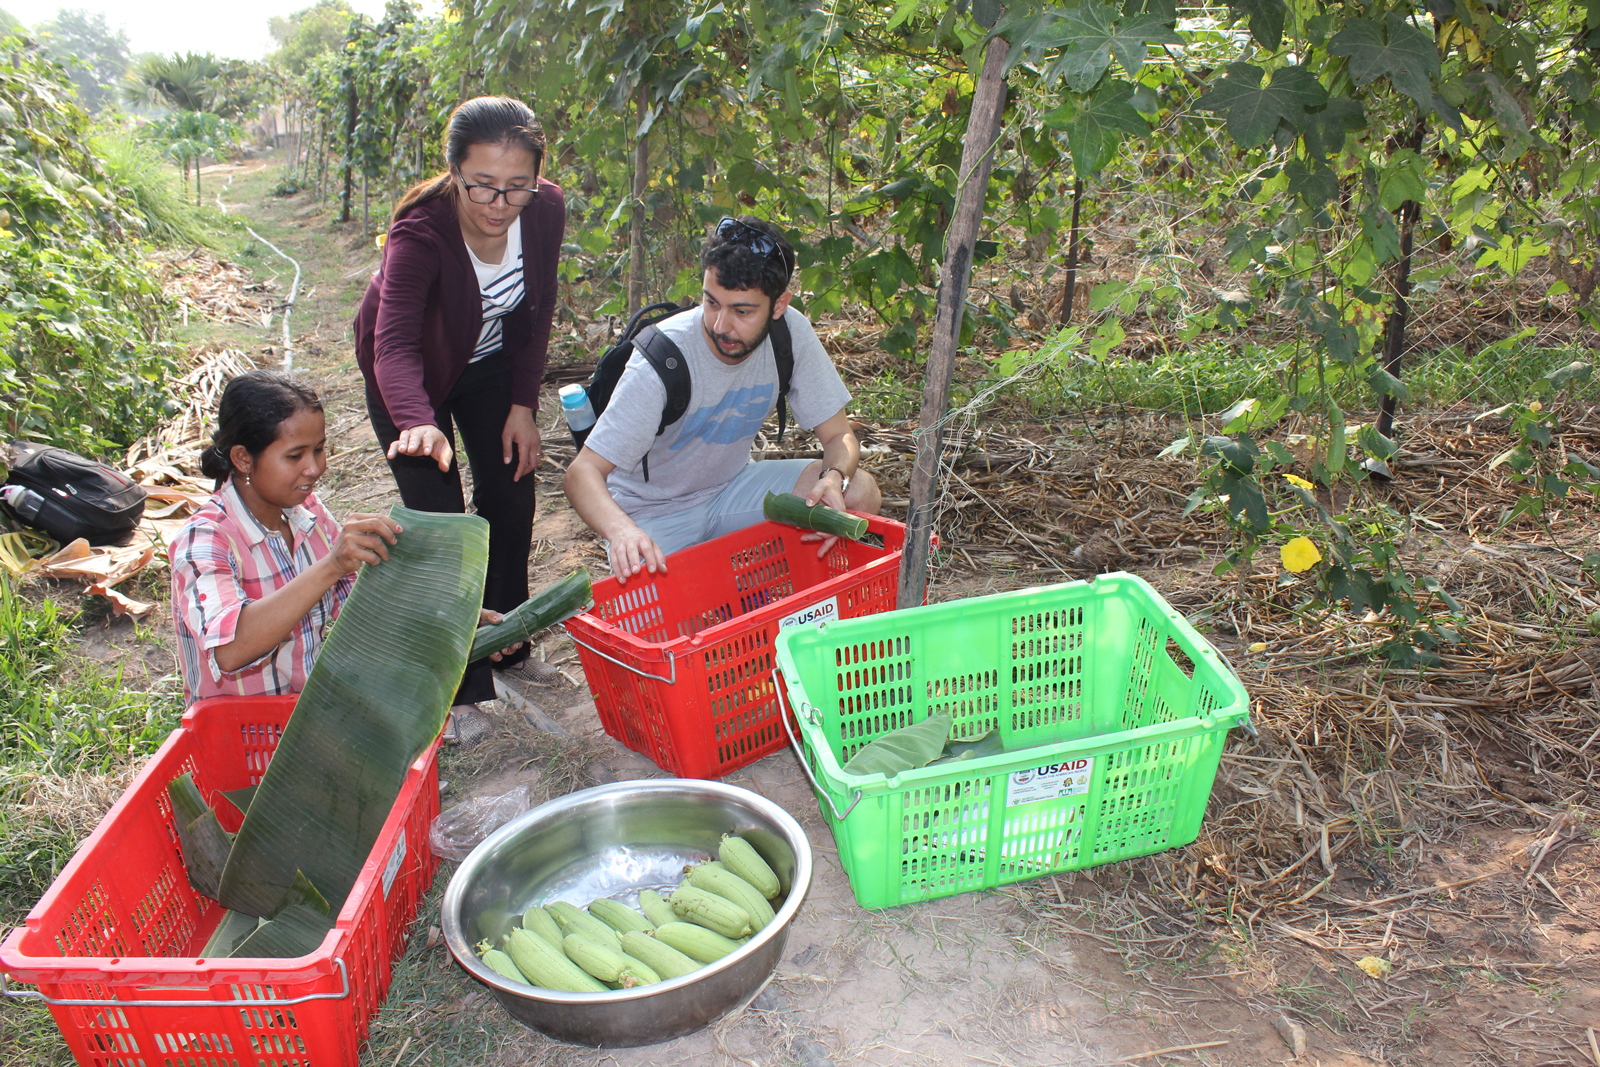 From left, farmer Eang Chakriya and technician Sel Rechaney show UC Davis researcher Angelos Deltsidis how they harvest sponge gourd and wrap the vegetable in banana leaves to pack and transport.